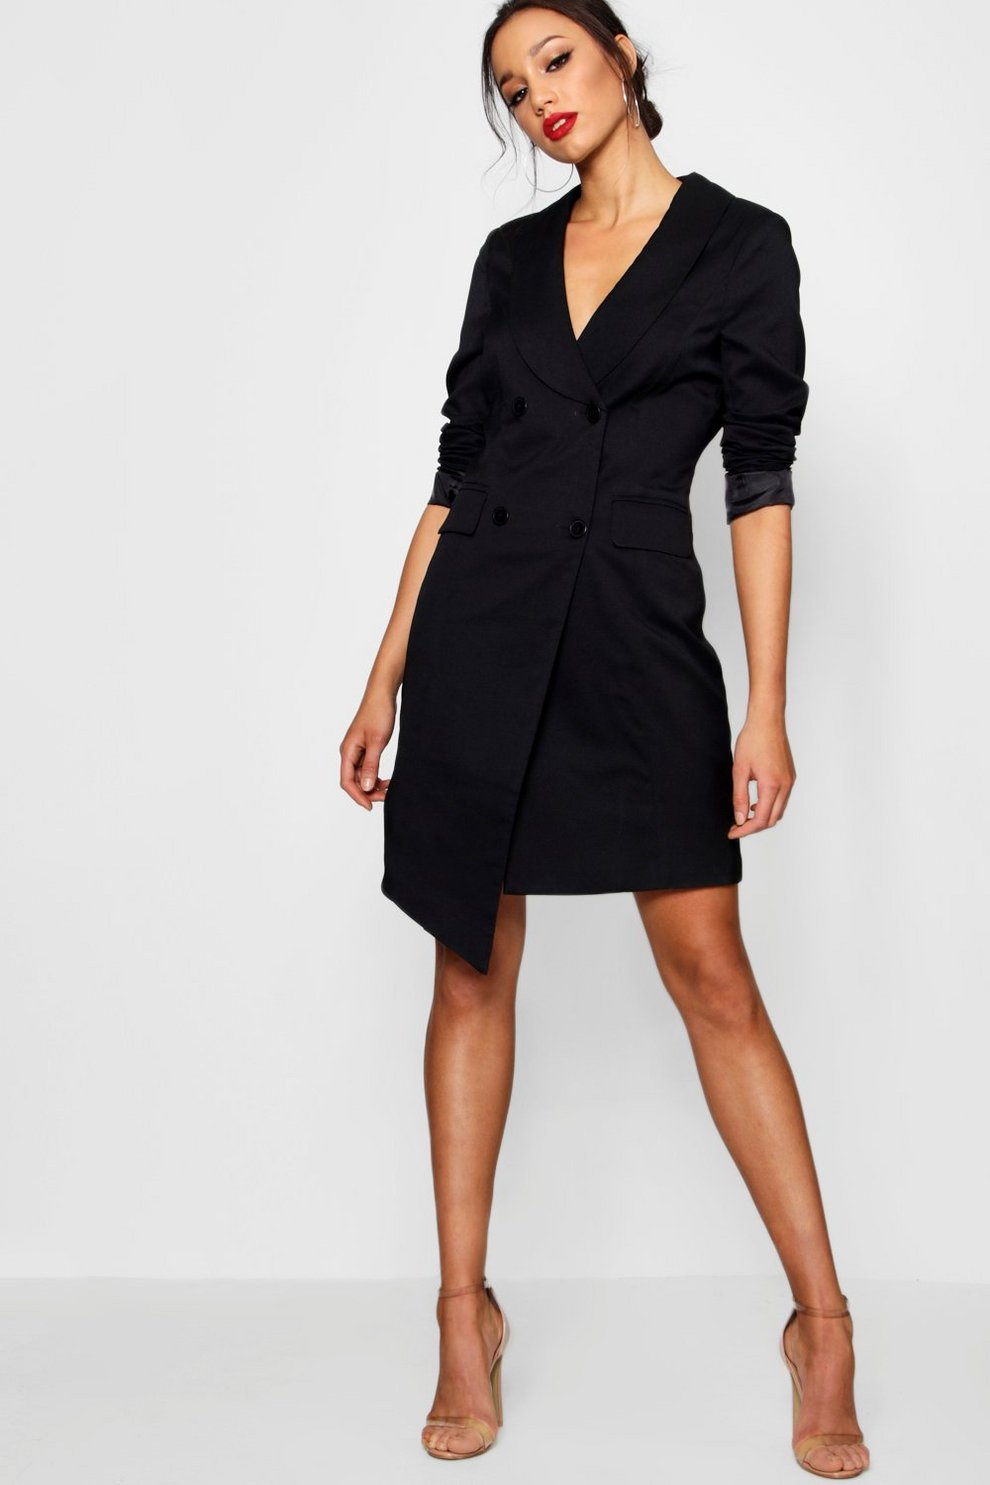 Boohoo Tall Wrap Asymmetric Blazer Dress Clearance Store Sale Online Buy Cheap Amazon Discount Big Discount Outlet Big Discount Free Shipping New Lpe99z